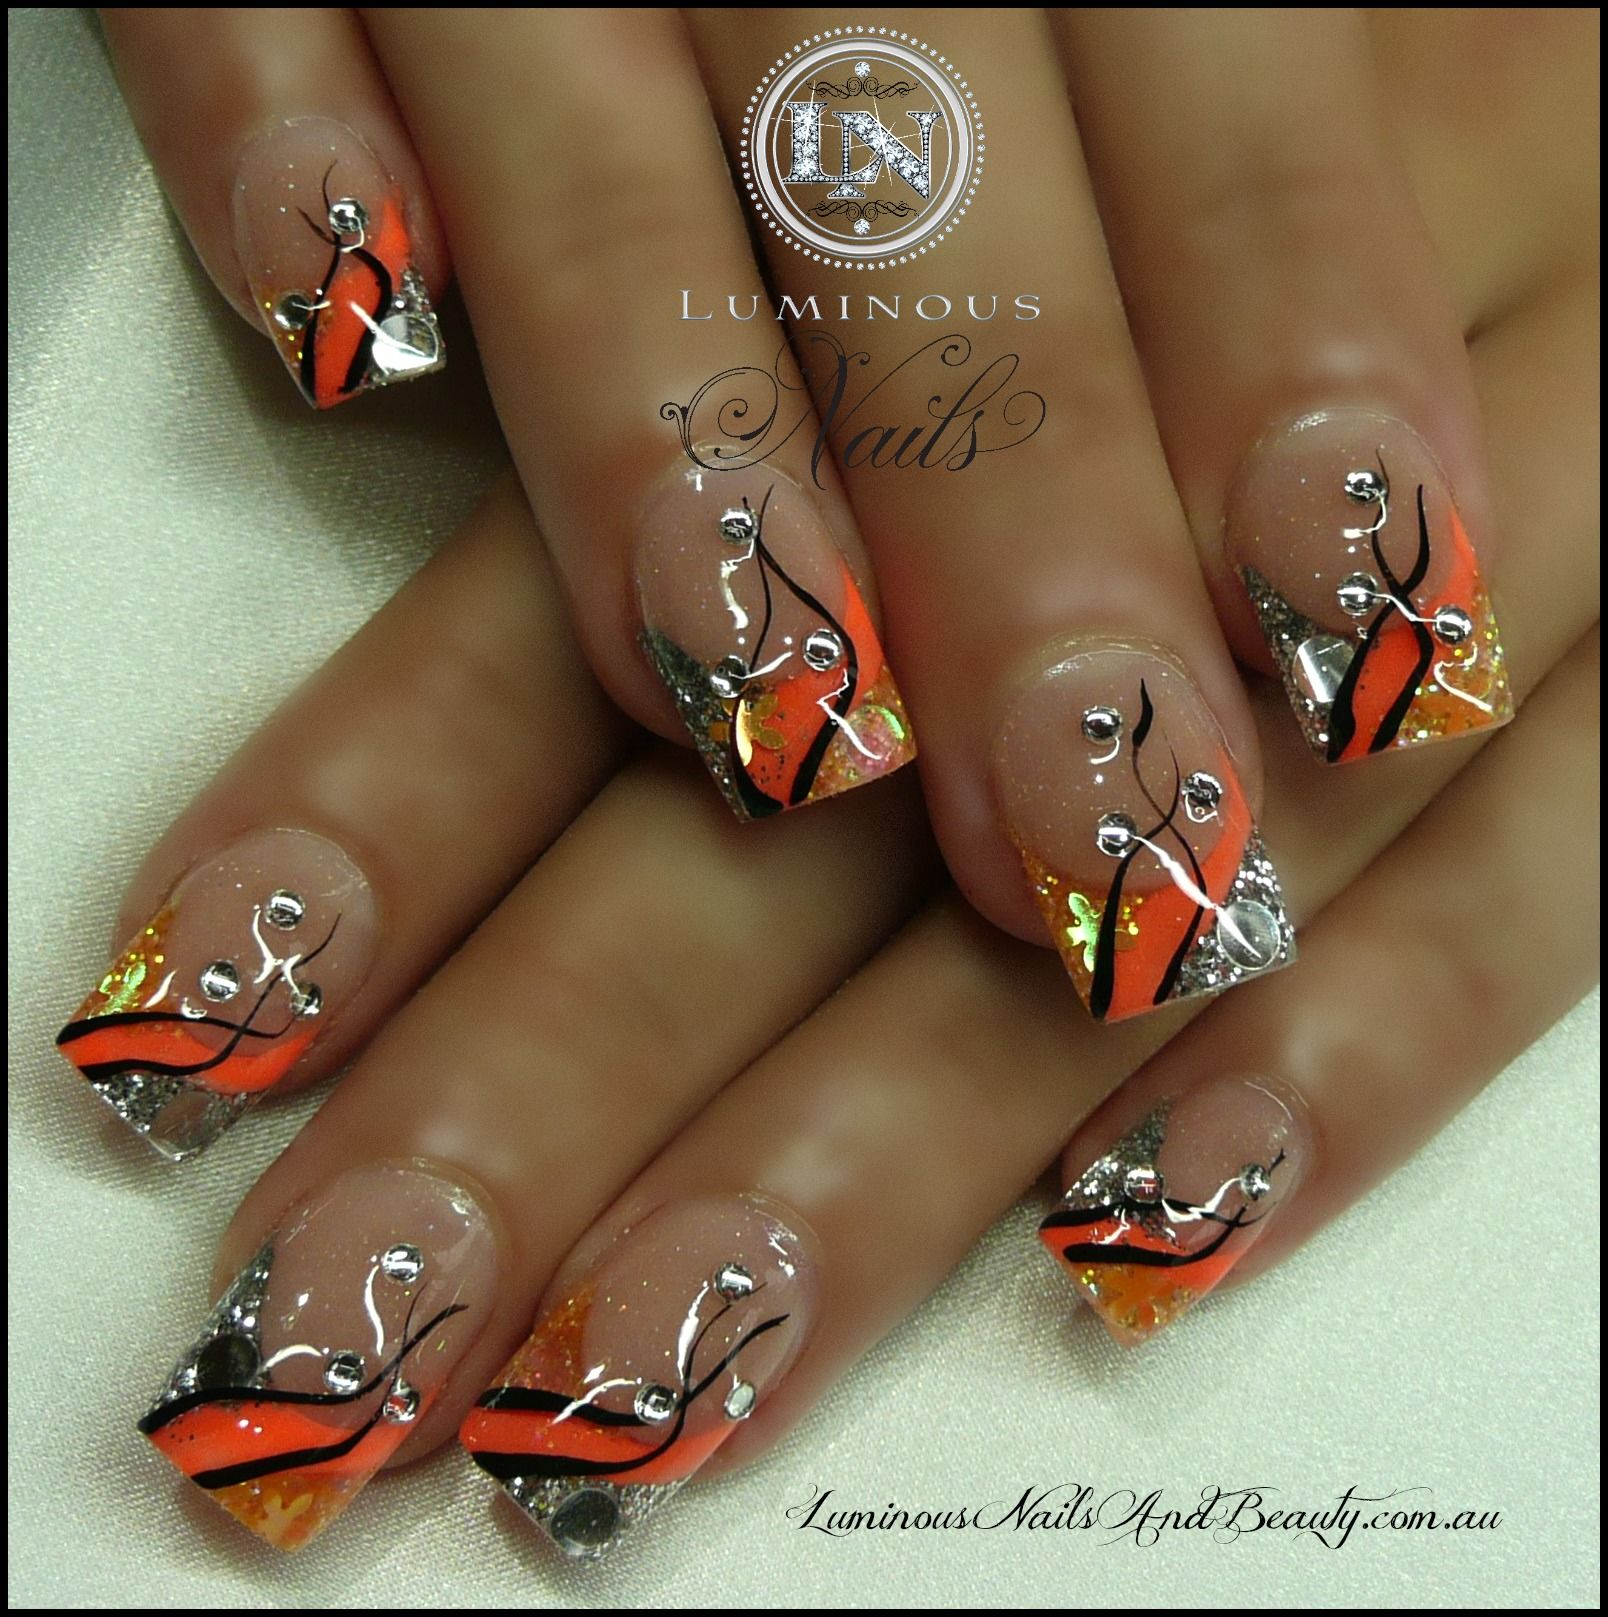 Luminous Nails and Beauty - Gold Coast Queensland - Ashmore - Benowa ...